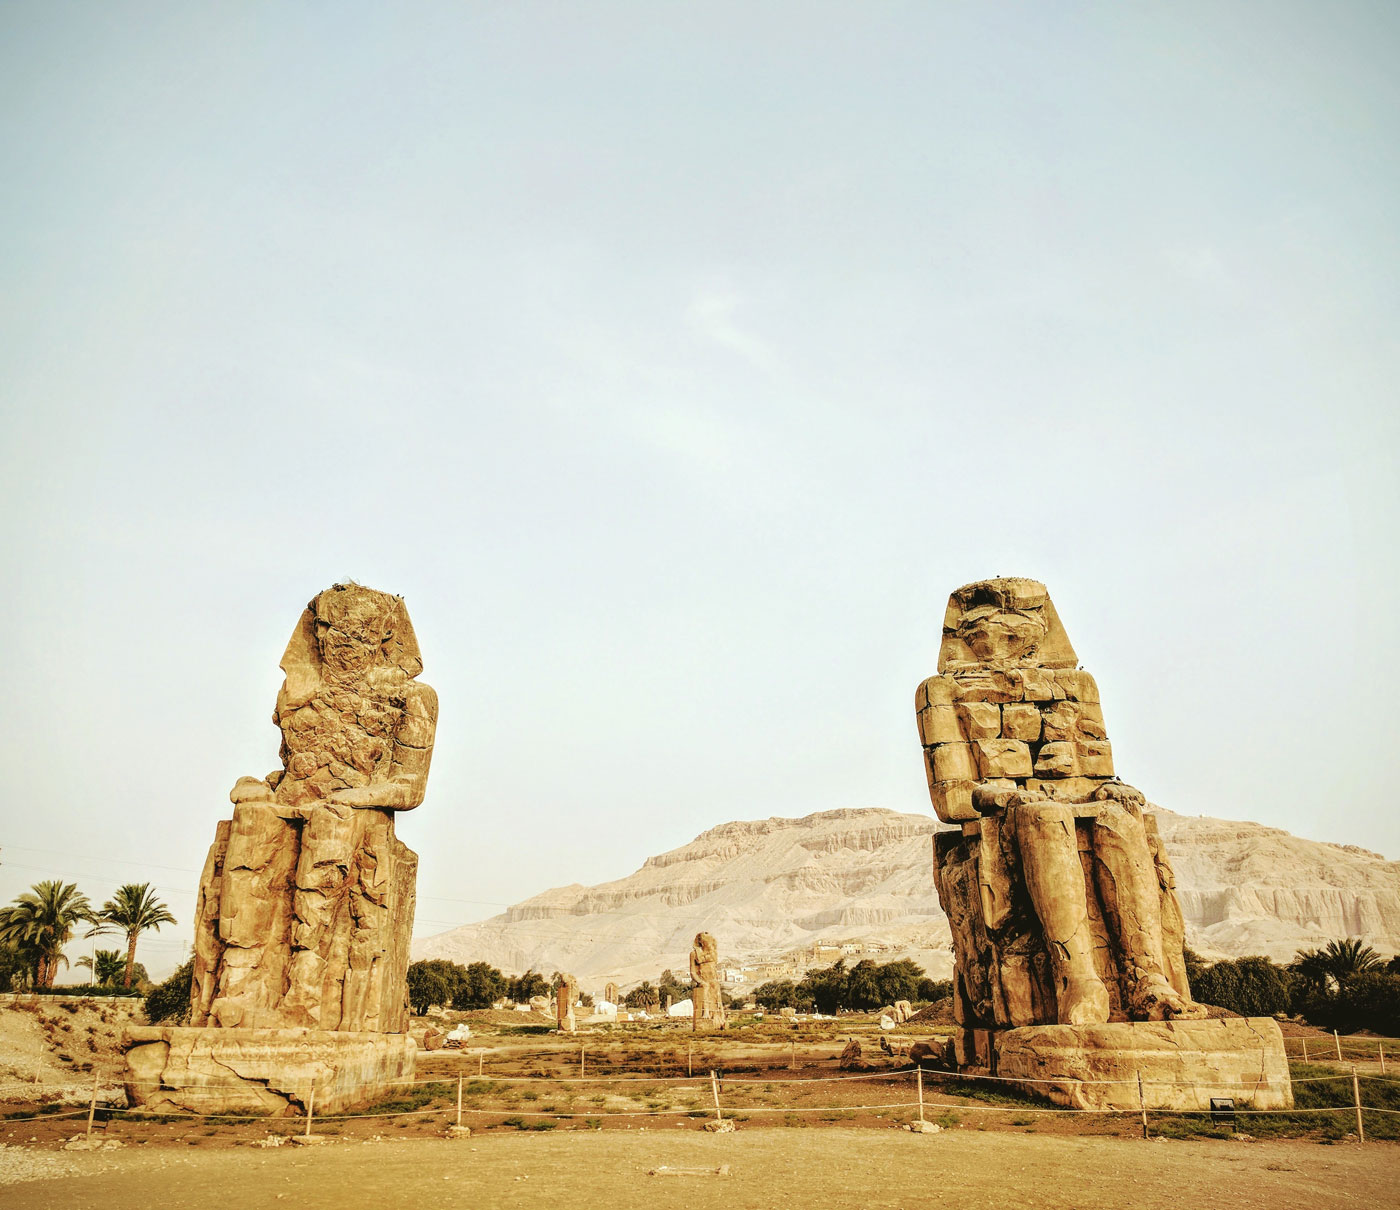 Colossi of Memnon statues at the Theban Necropolis near modern day Luxor